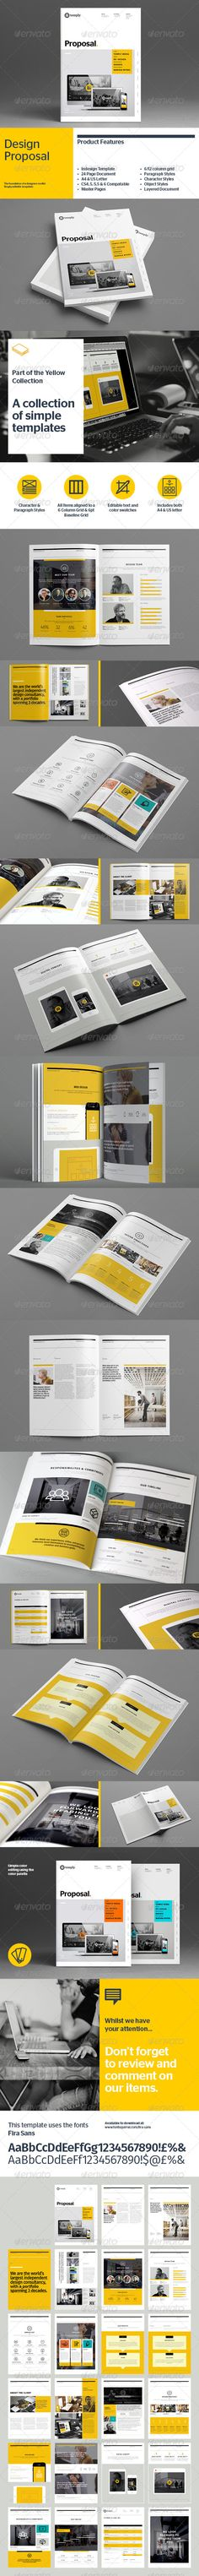 Agency Proposal Template Proposal templates, Proposals and - graphic design proposal template